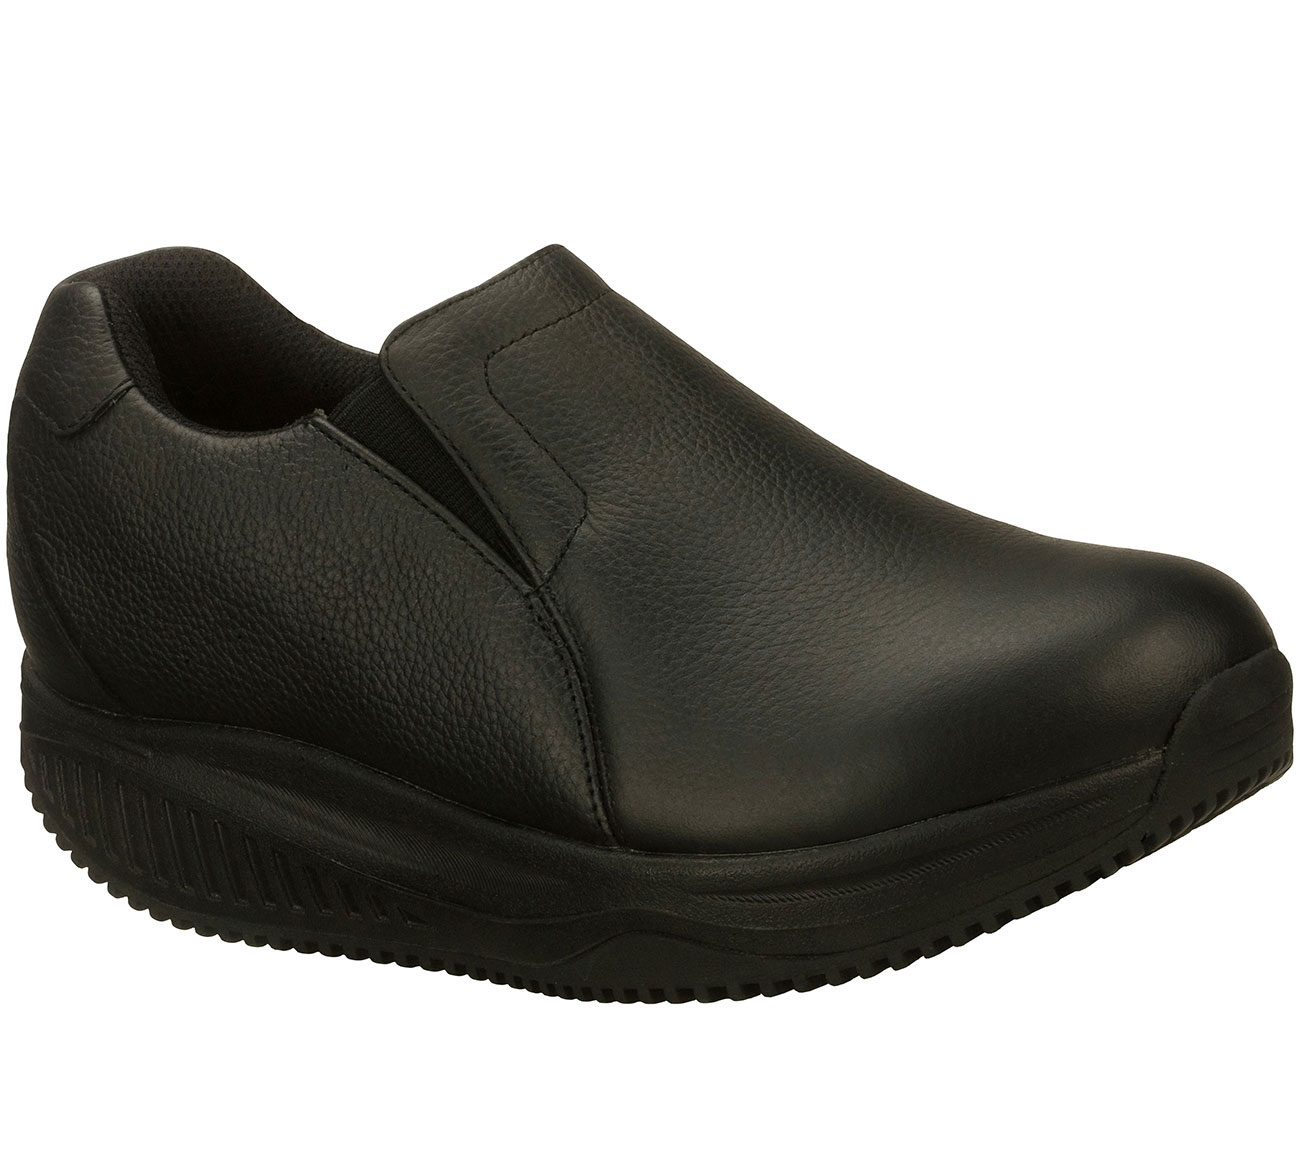 Skechers Work Compulsions Slip Resistant Shoes